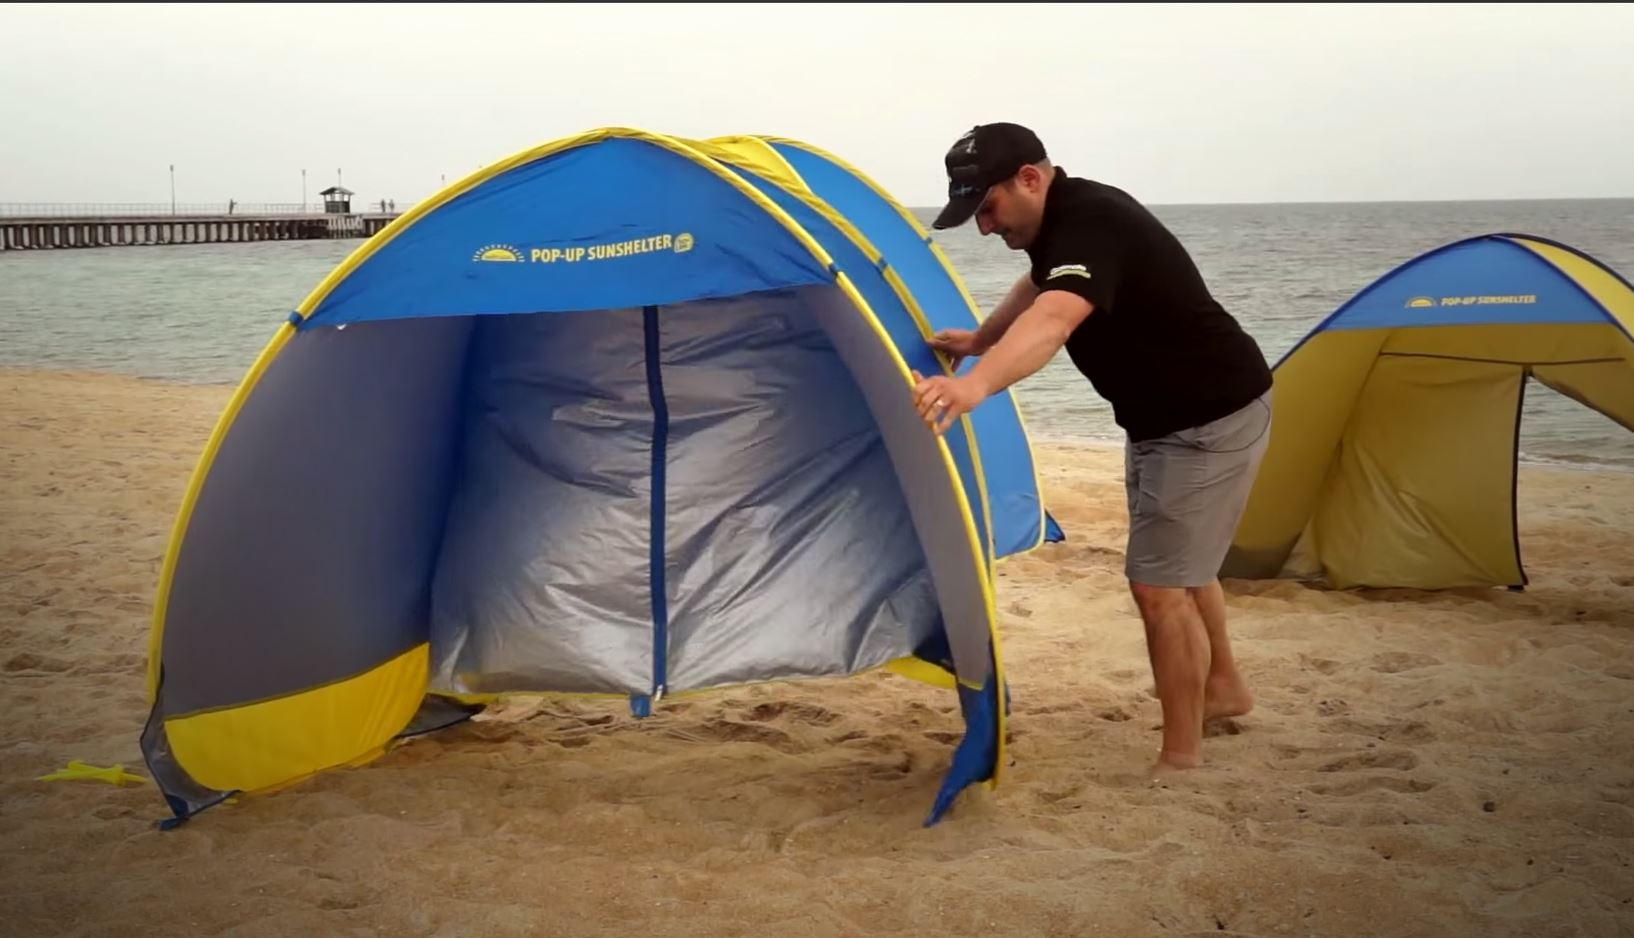 Pop-Up Beach Sunshelter - Small - Video